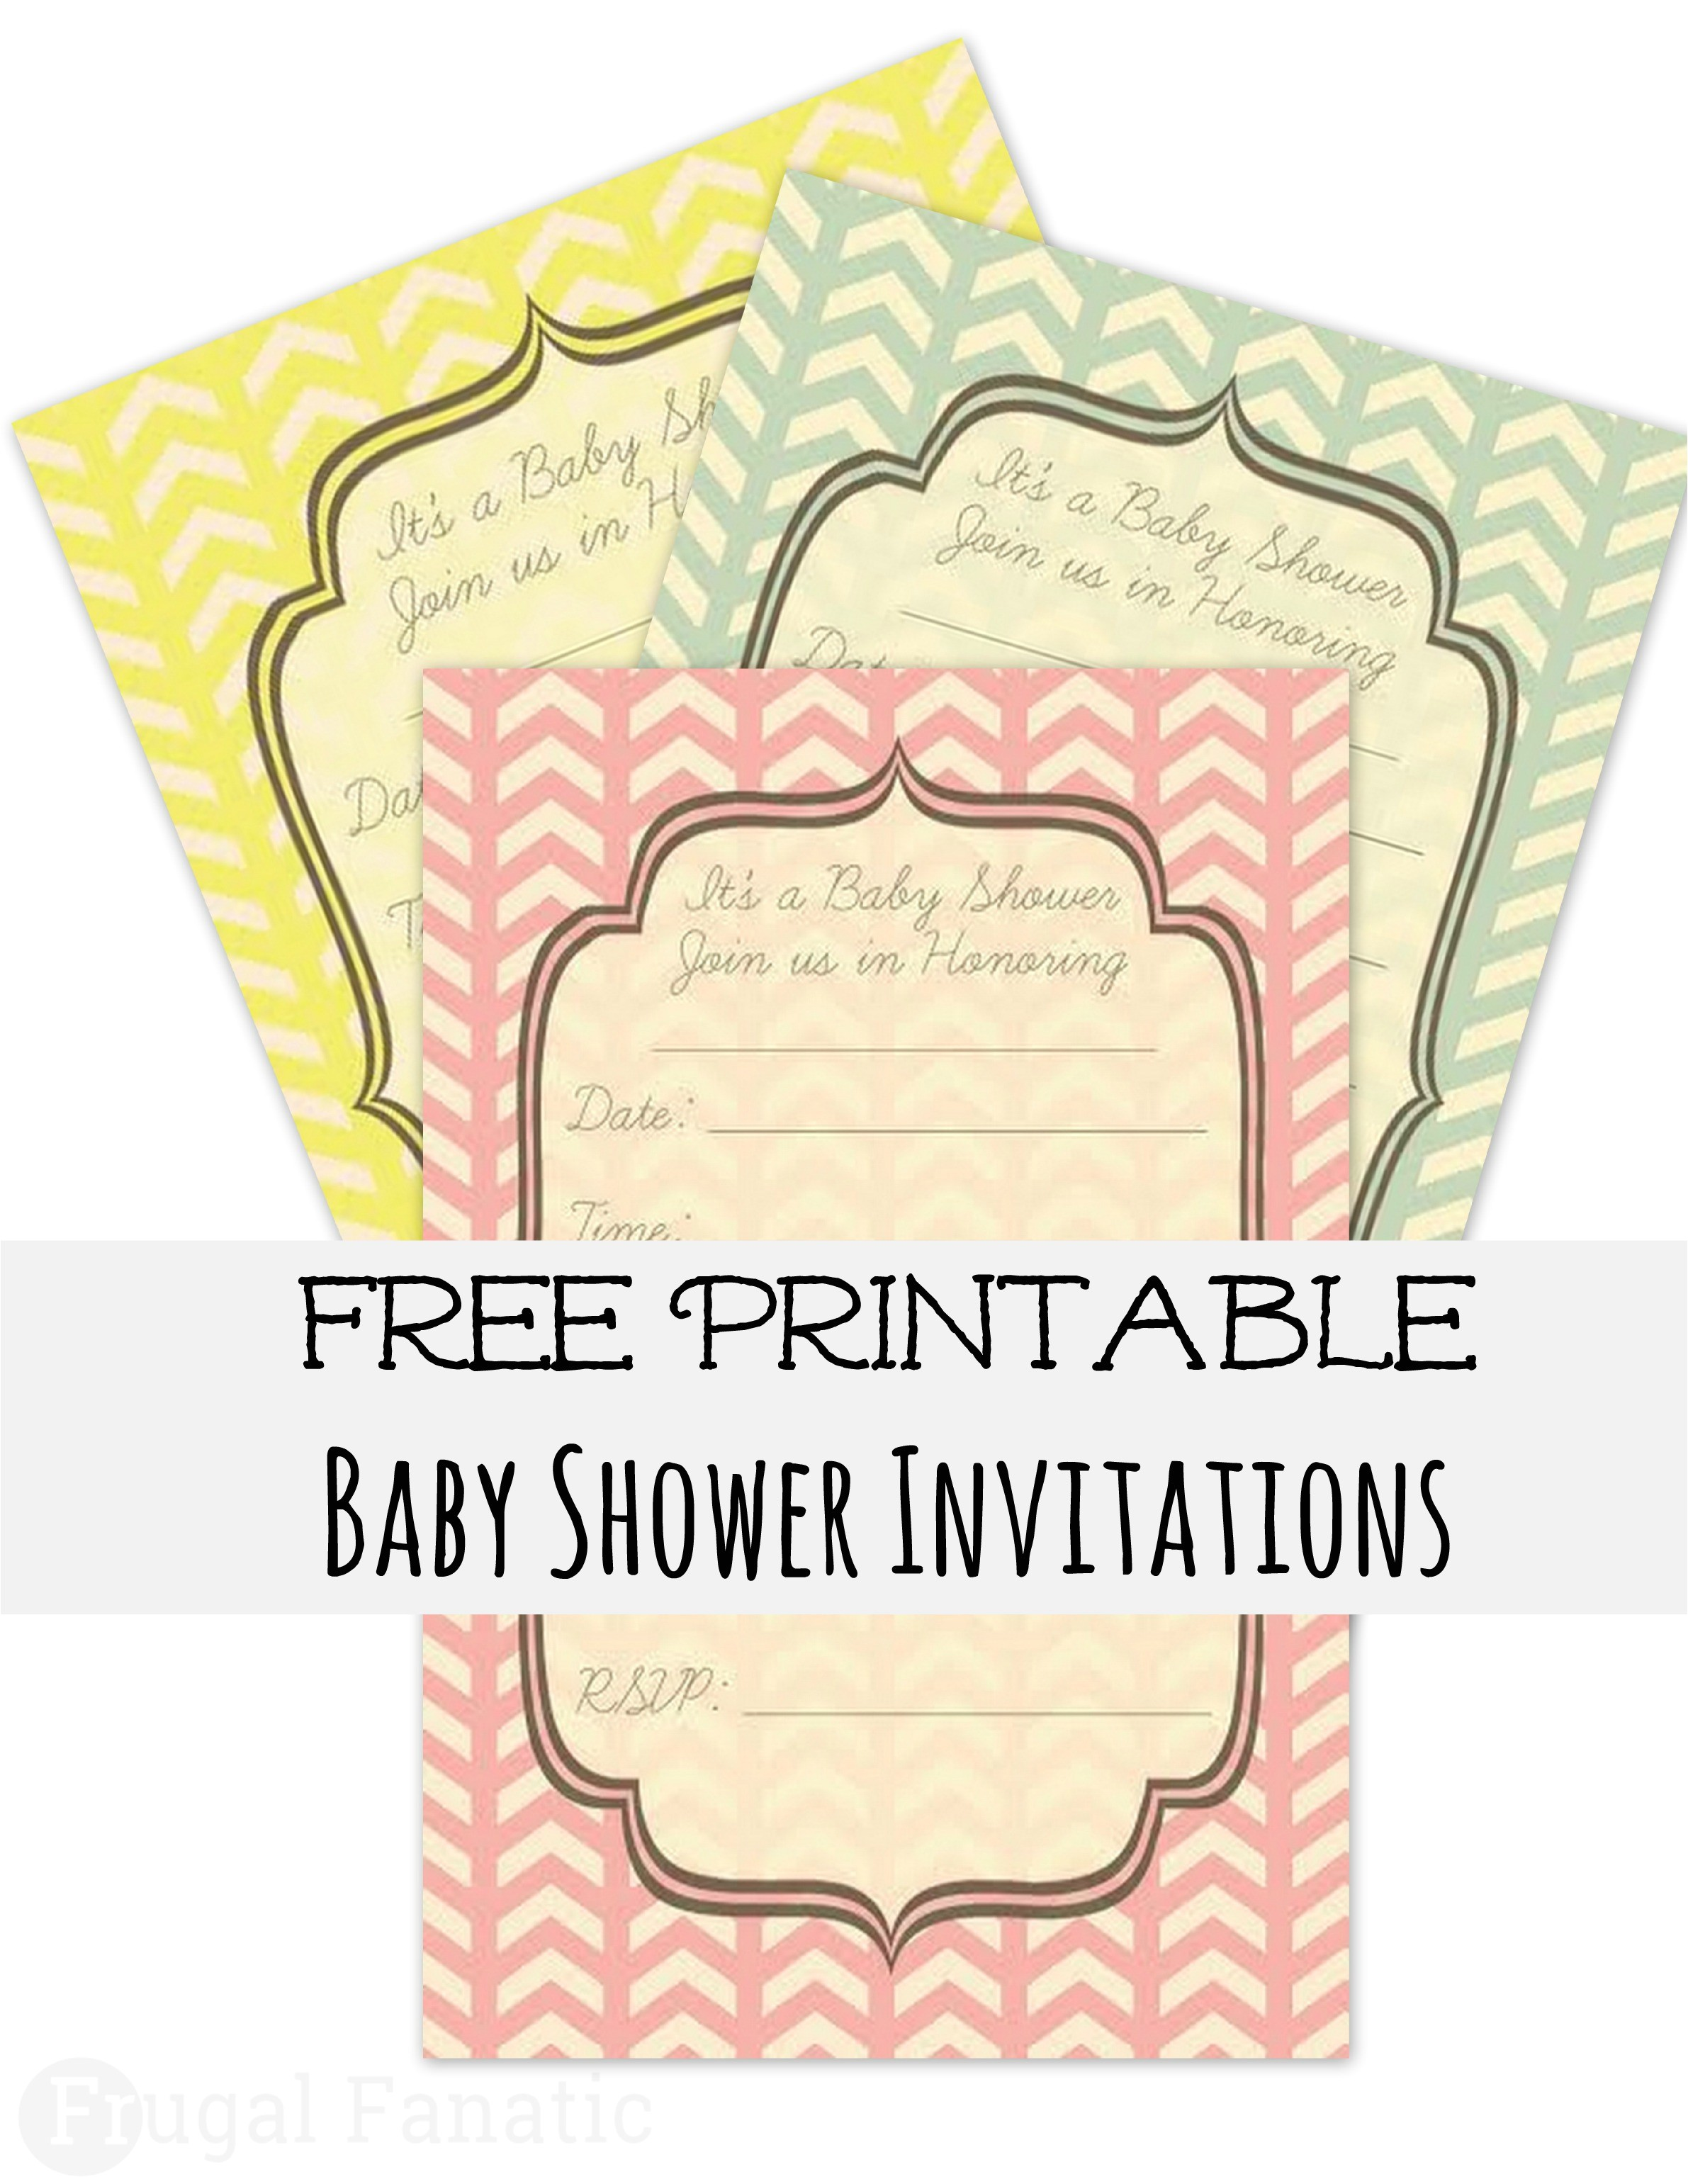 Create A Baby Shower Invitation Online Baby Shower Invitations Create Your Own Free